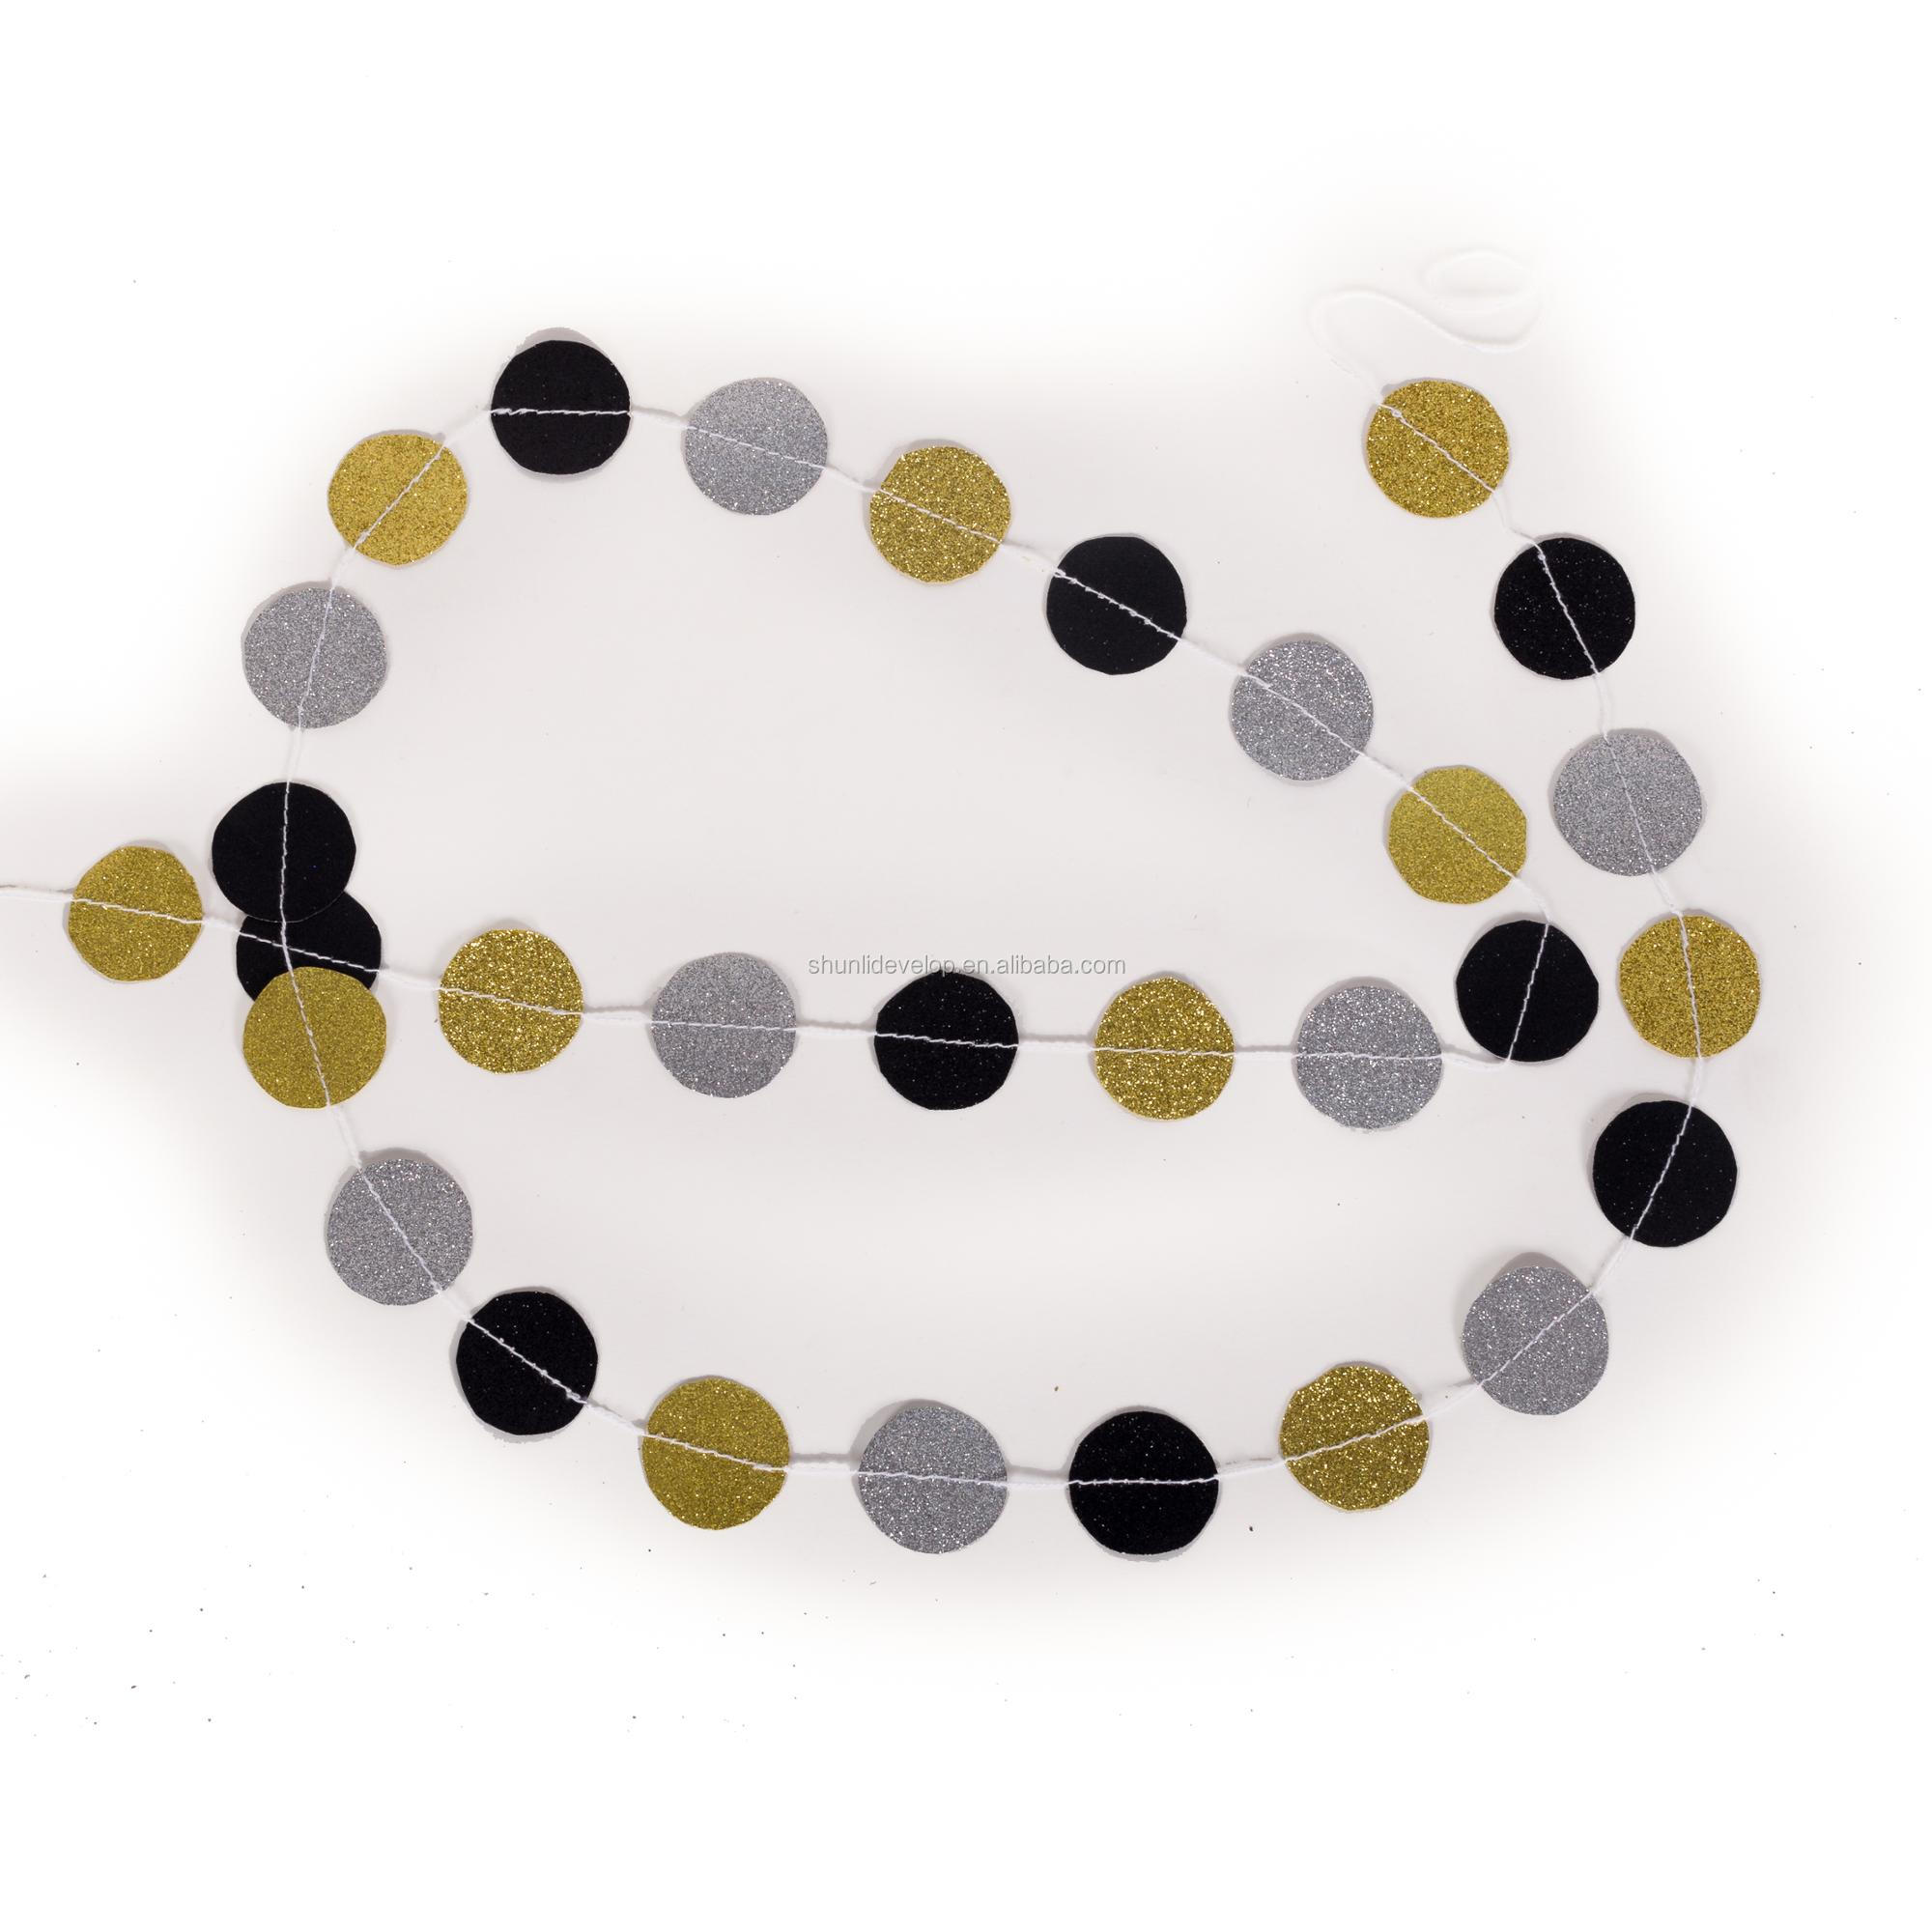 Black White Glitter Gold Mixed Color Paper Circle Garland for Christmas Party Decoration